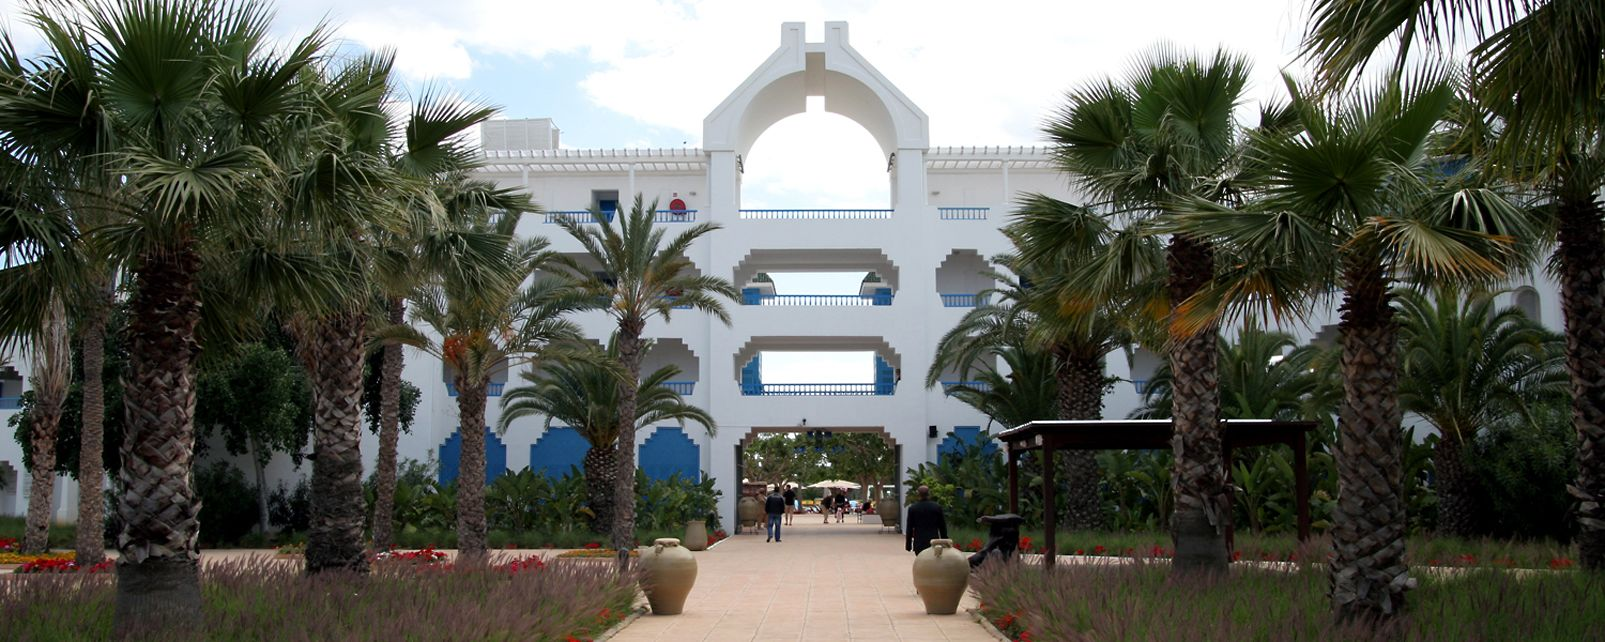 Hôtel Mirage Beach Club